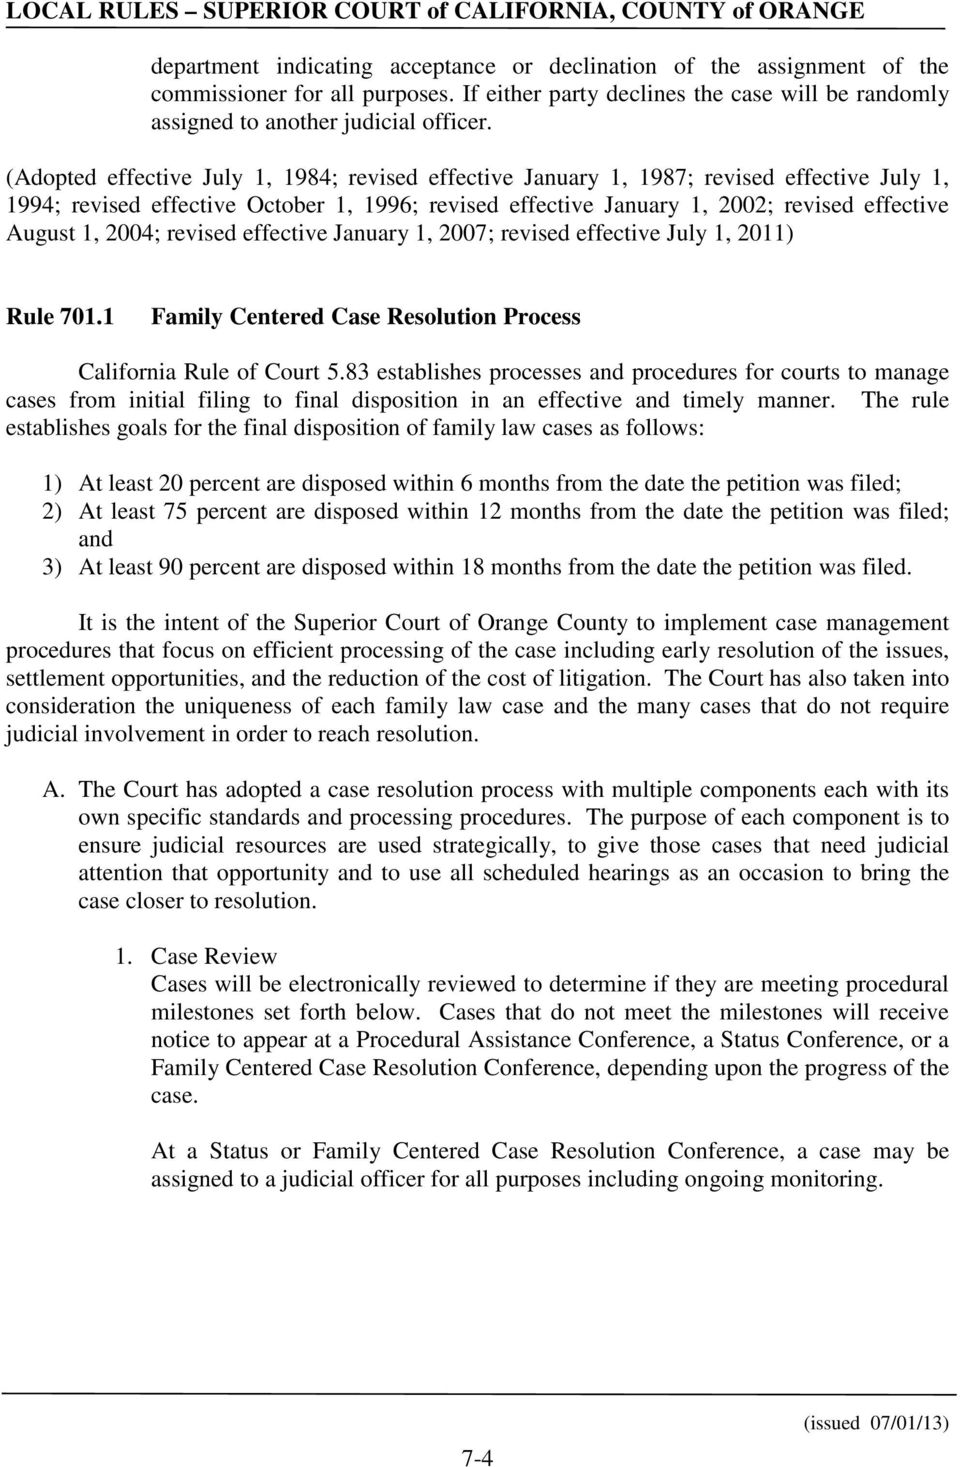 2004; revised effective January 1, 2007; revised effective July 1, 2011) Rule 701.1 Family Centered Case Resolution Process California Rule of Court 5.